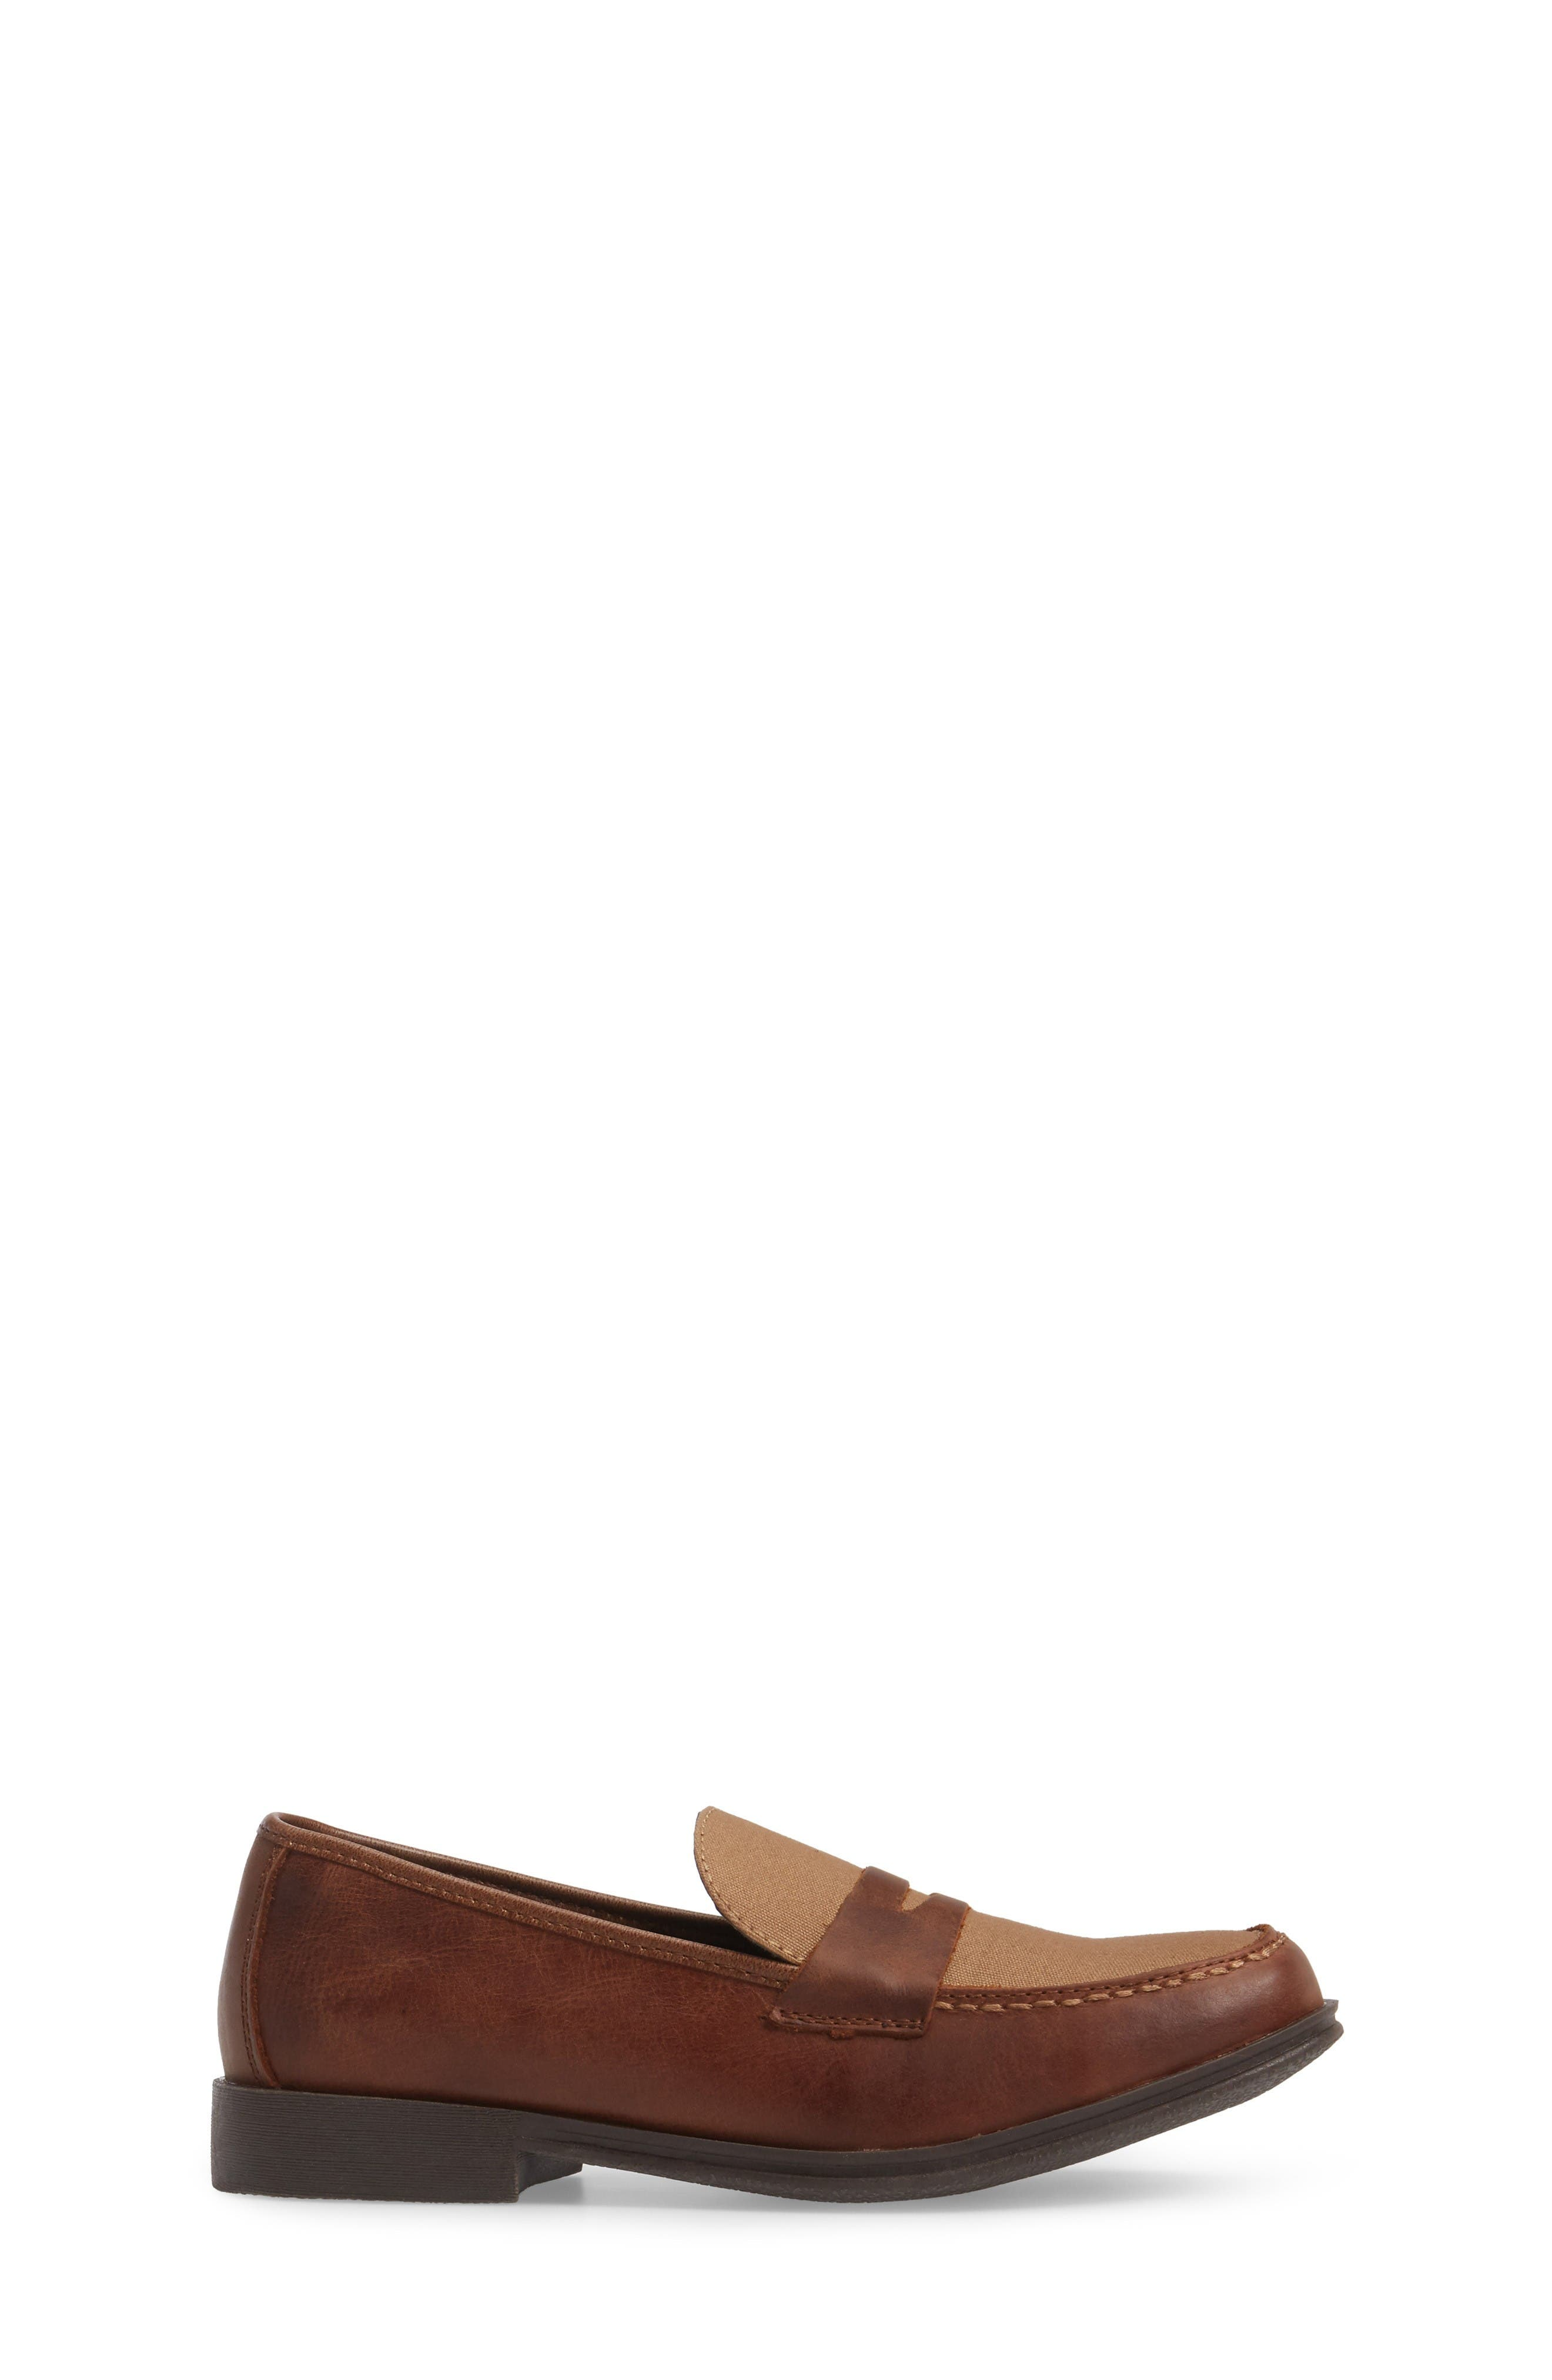 Club Loft Loafer,                             Alternate thumbnail 3, color,                             Tan/ Brown Leather